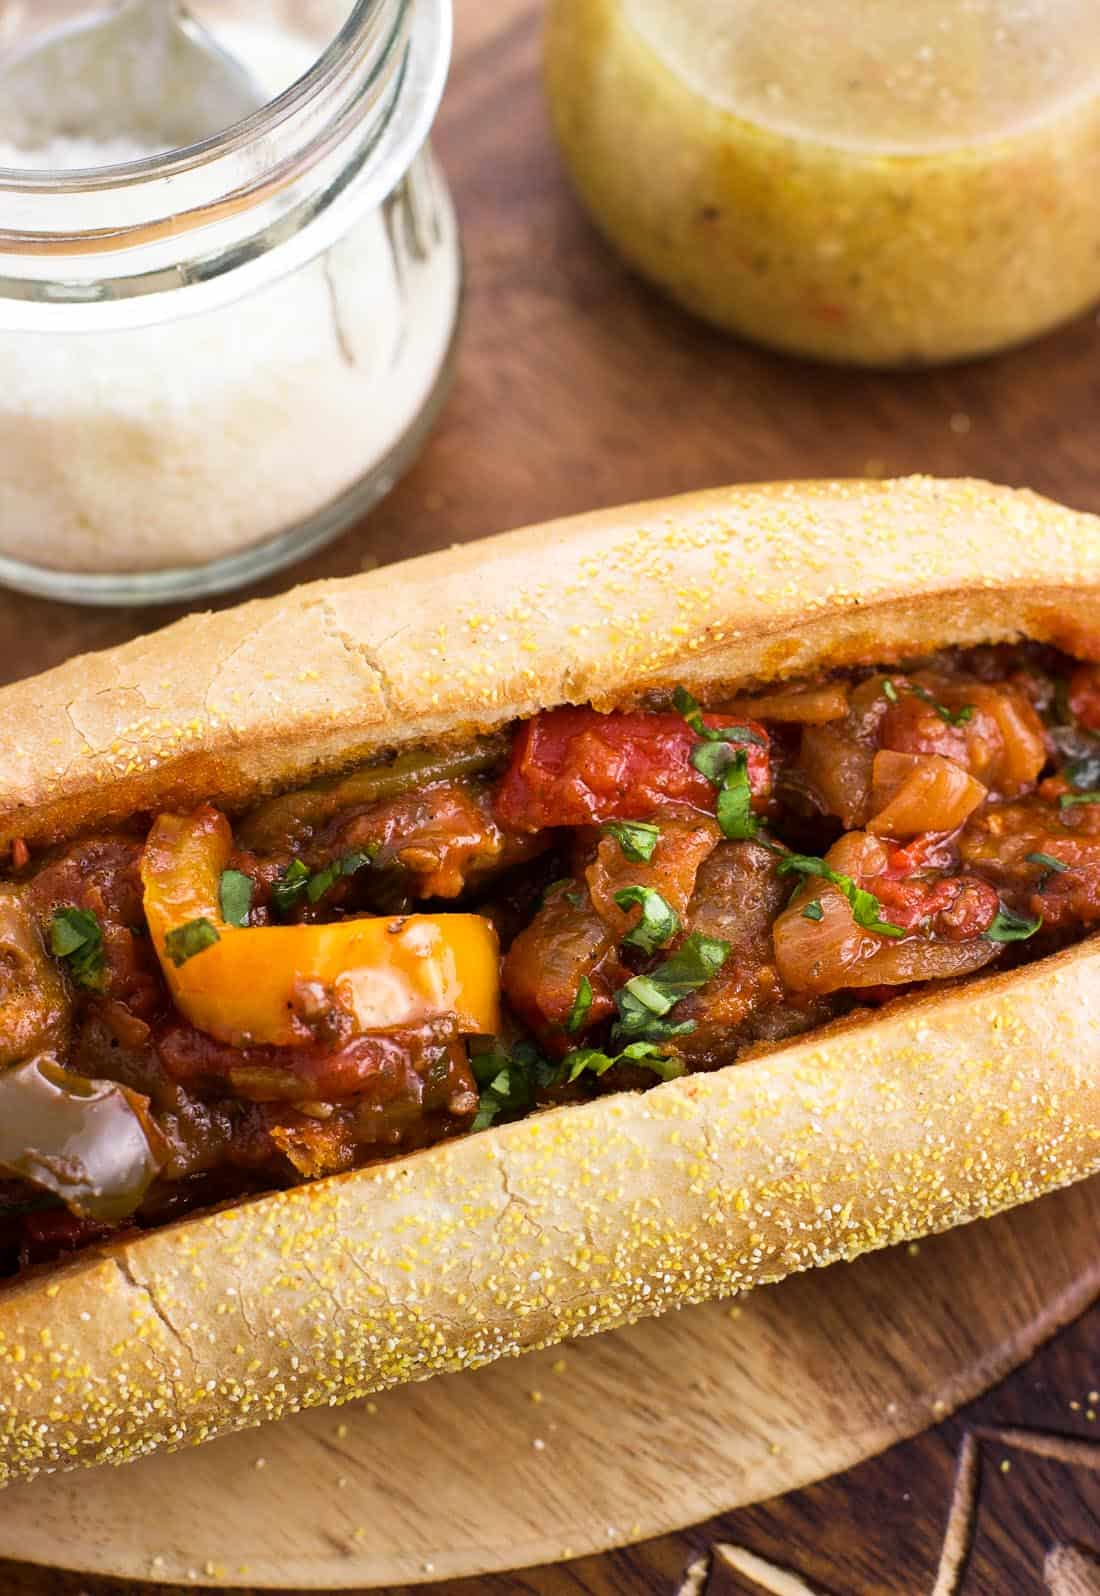 A close up shot of an Italian sausage and peppers sandwich